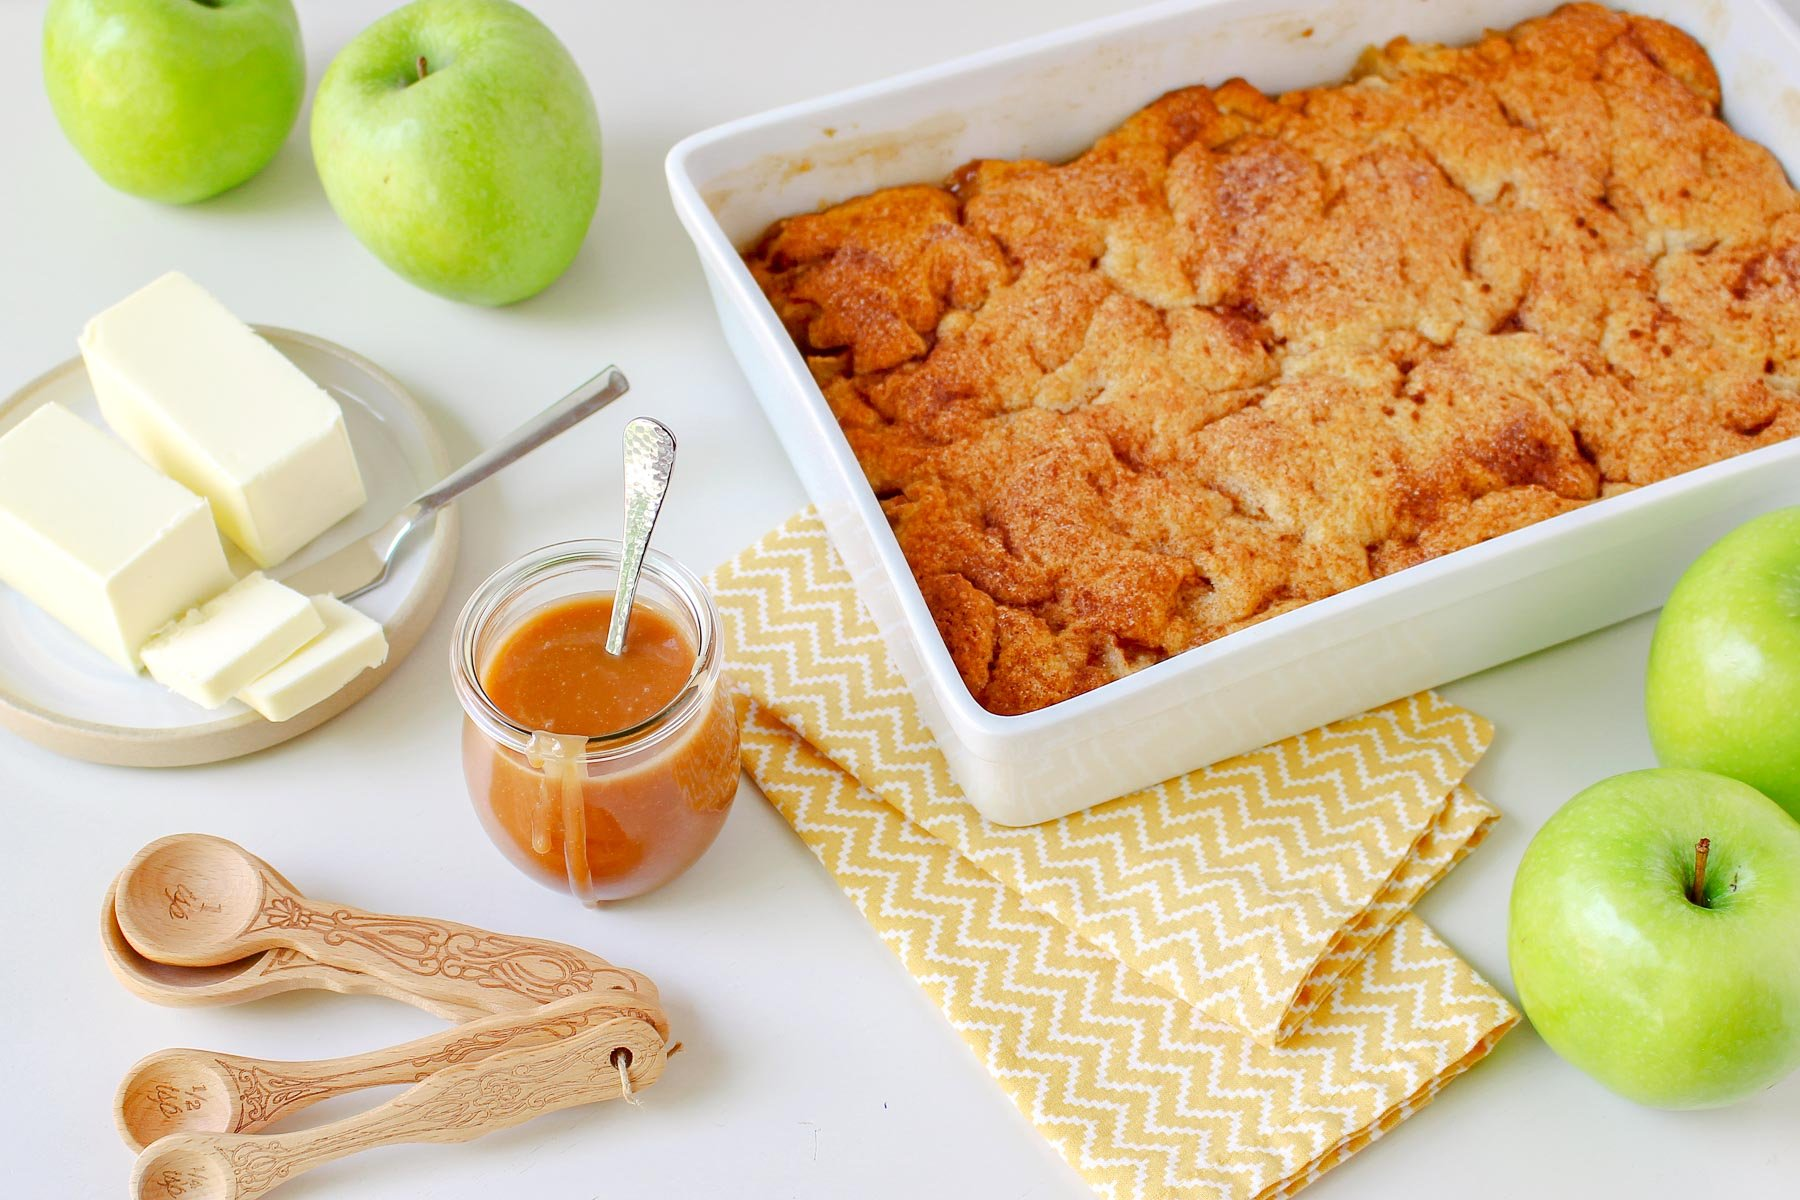 apple cobbler in large white baking dish with caramel sauce jar off to the side and green granny smith apples next to it.